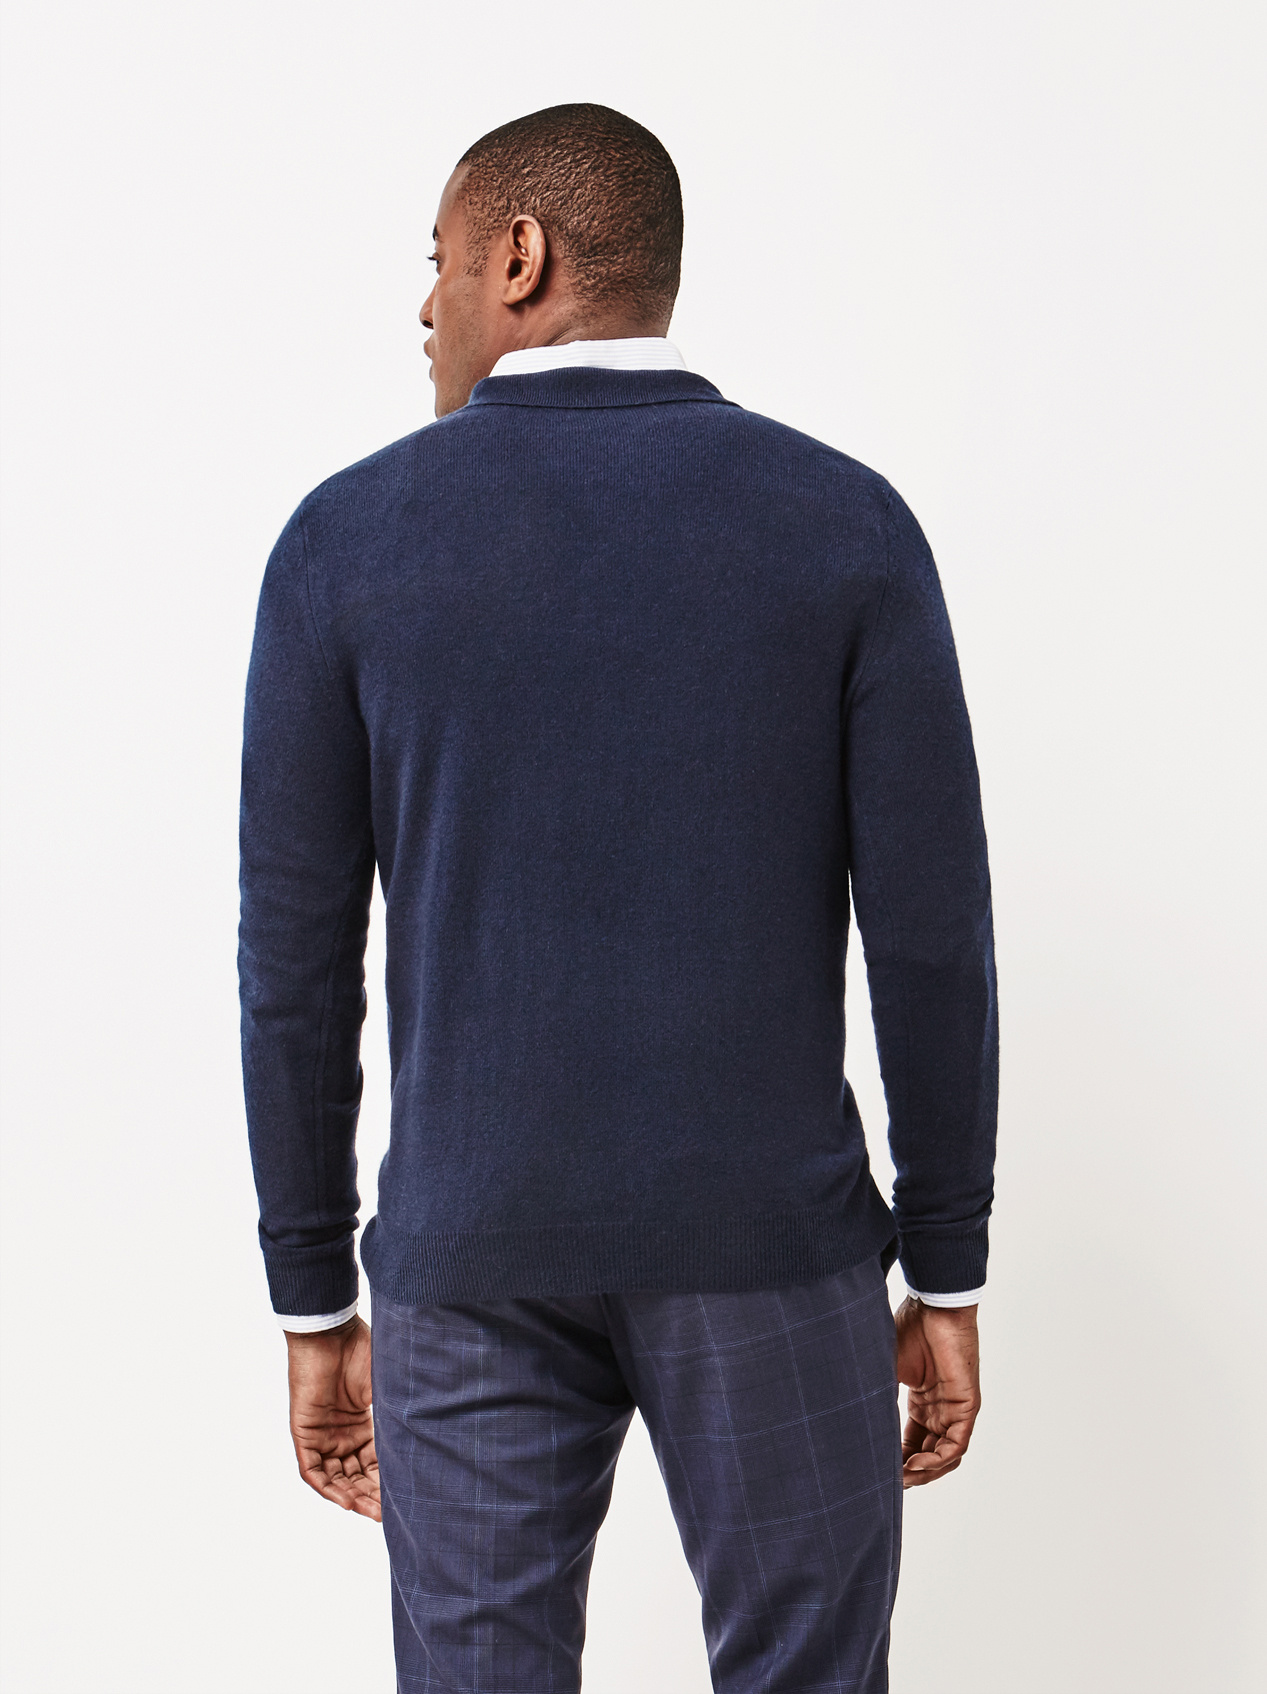 Soft Goat Men's Collar Cardigan Navy